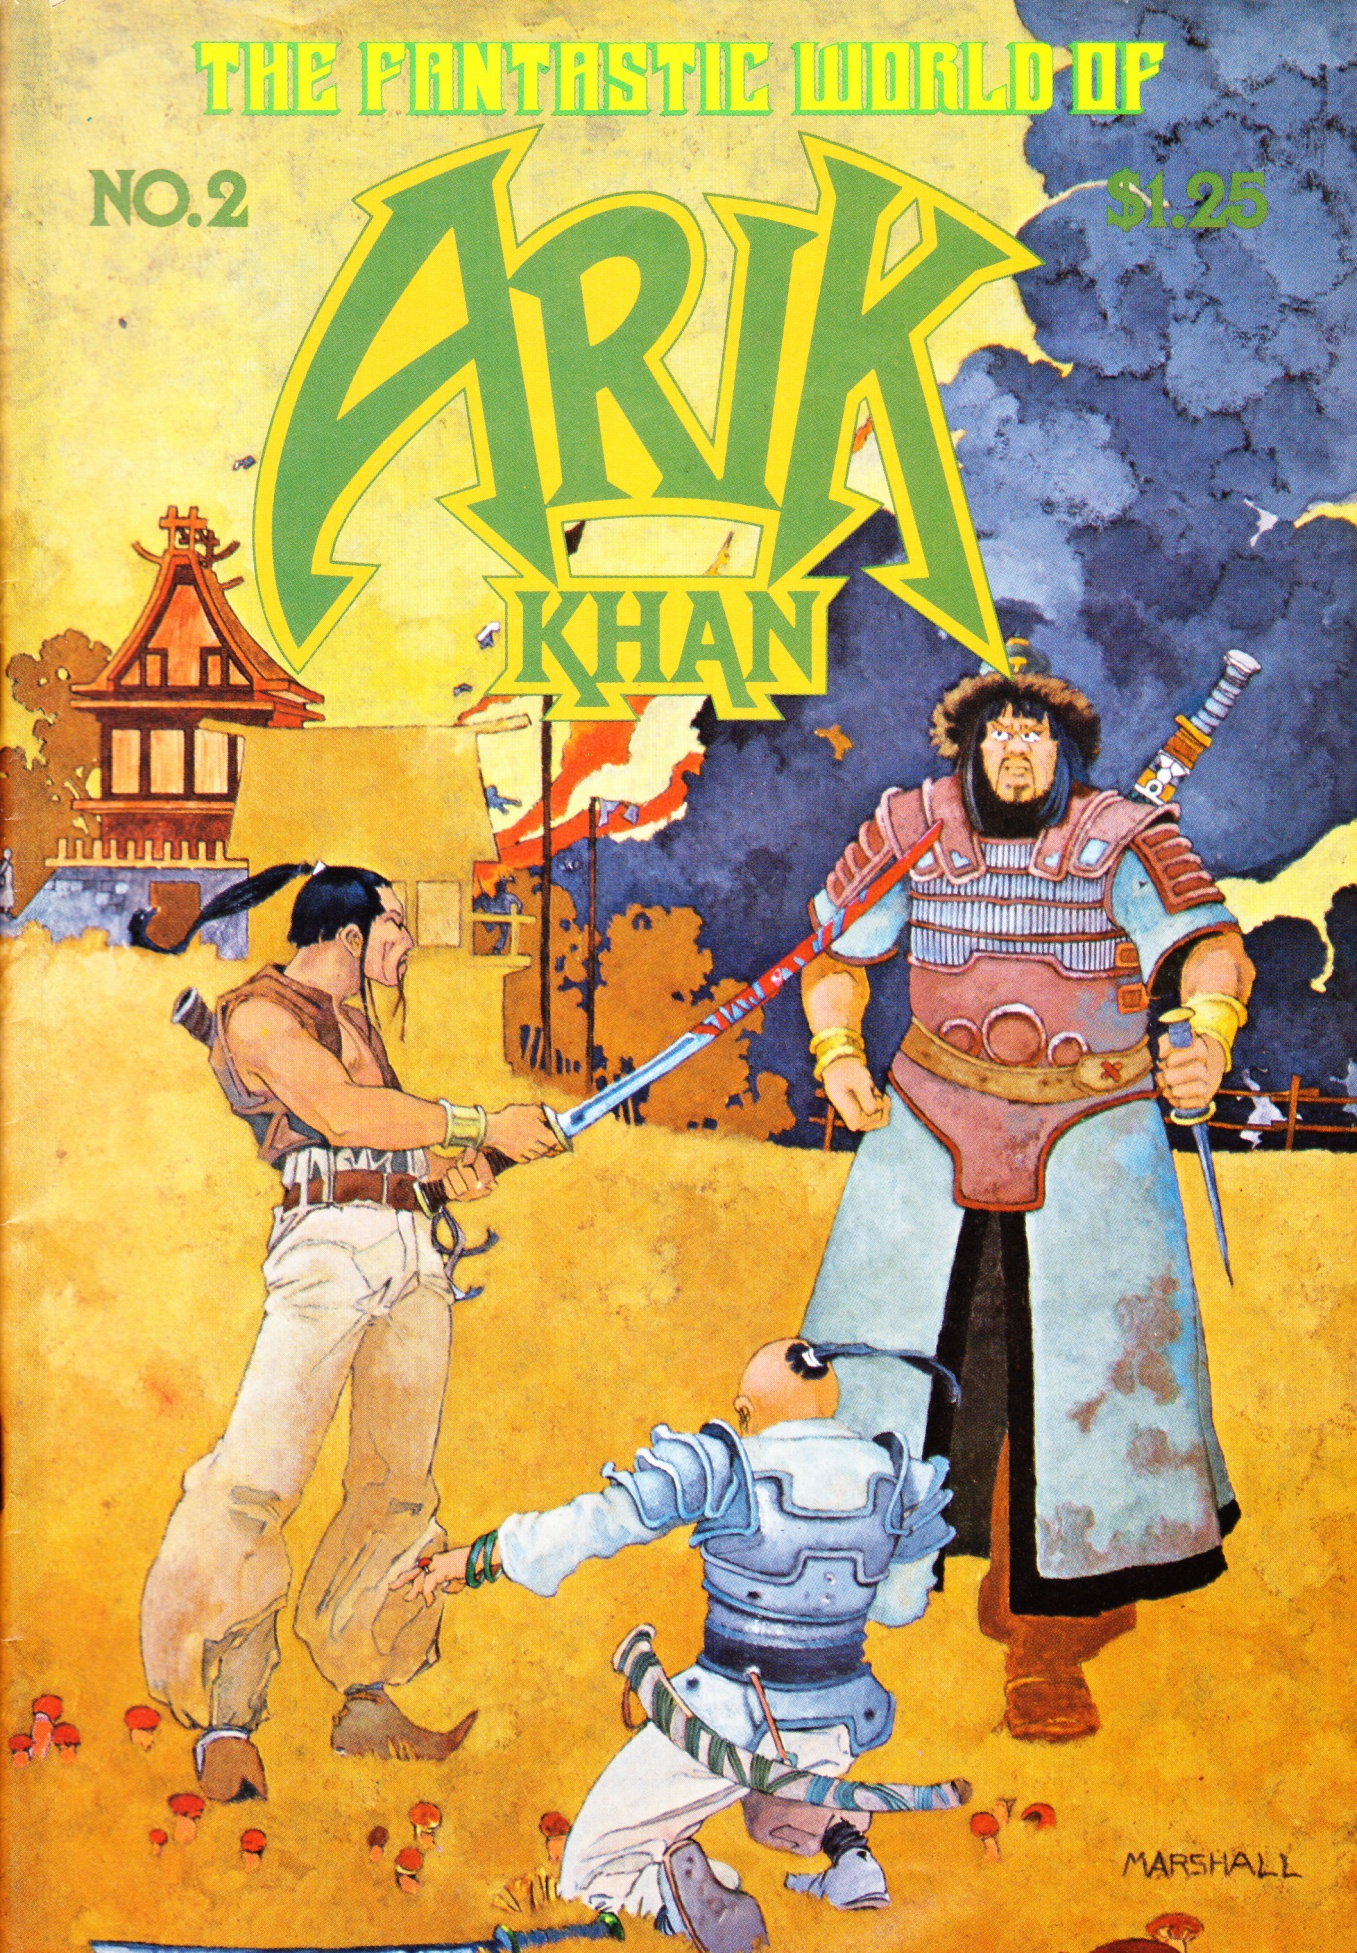 C:\Users\Robert\Documents\CARTOONING ILLUSTRATION ANIMATION\IMAGE CARTOON\IMAGE CARTOON A\ARIK KHAN, Arik Khan, 1-2, June 1978, fc.jpg